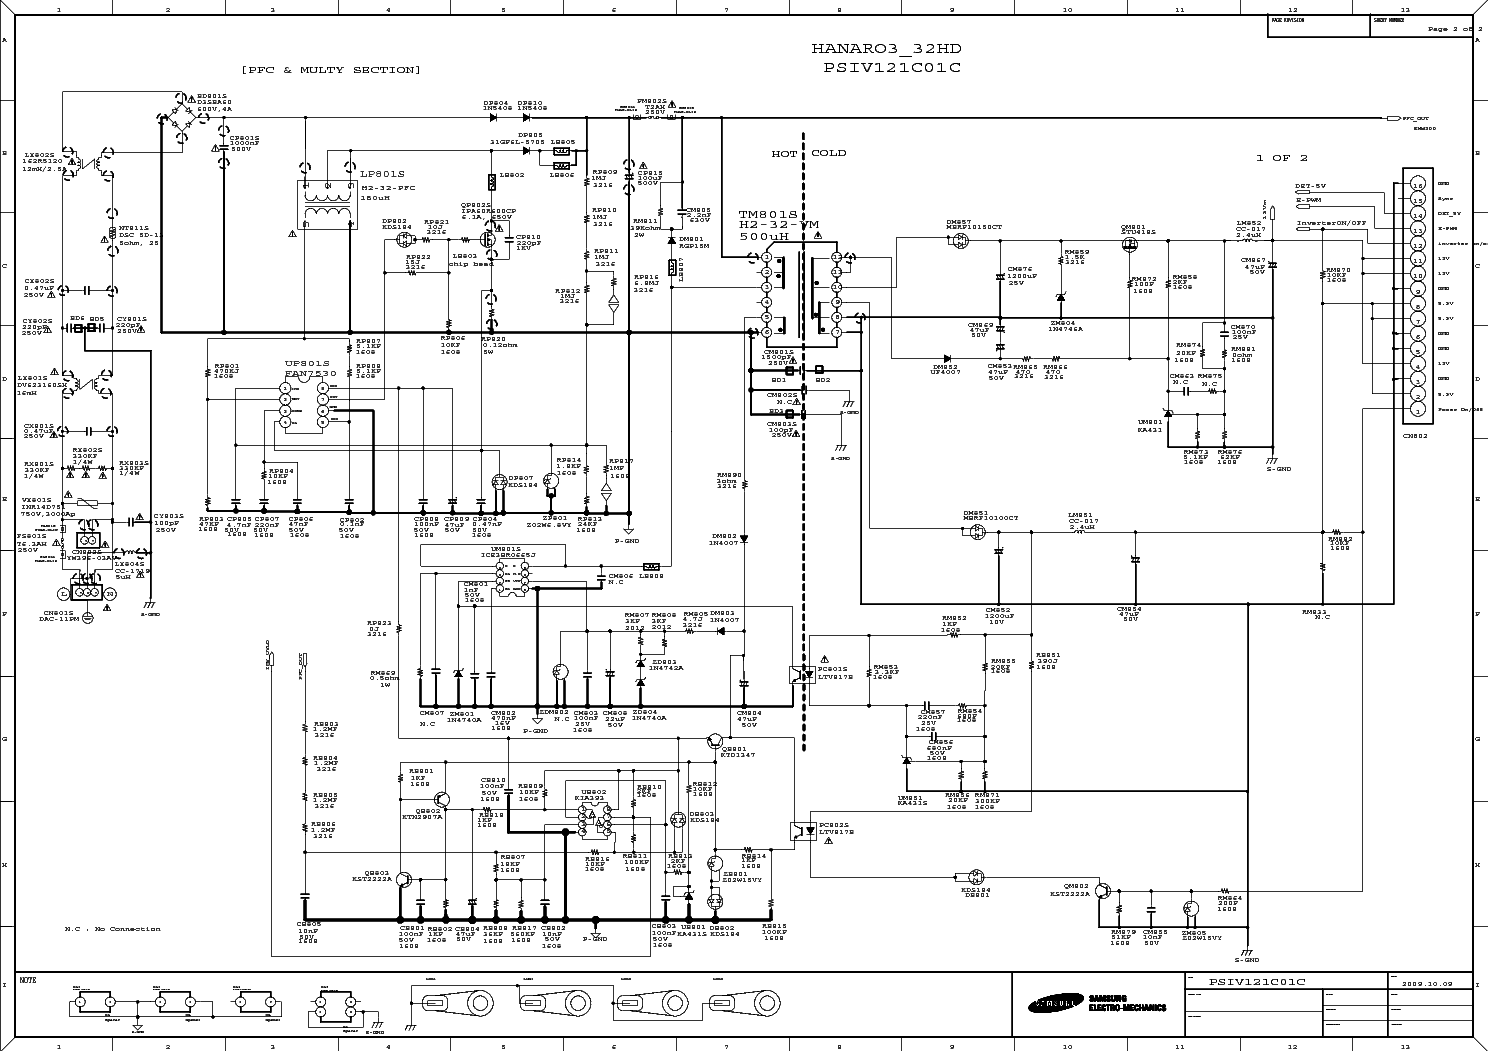 Call Web Service Diagram Free Download Wiring Diagram